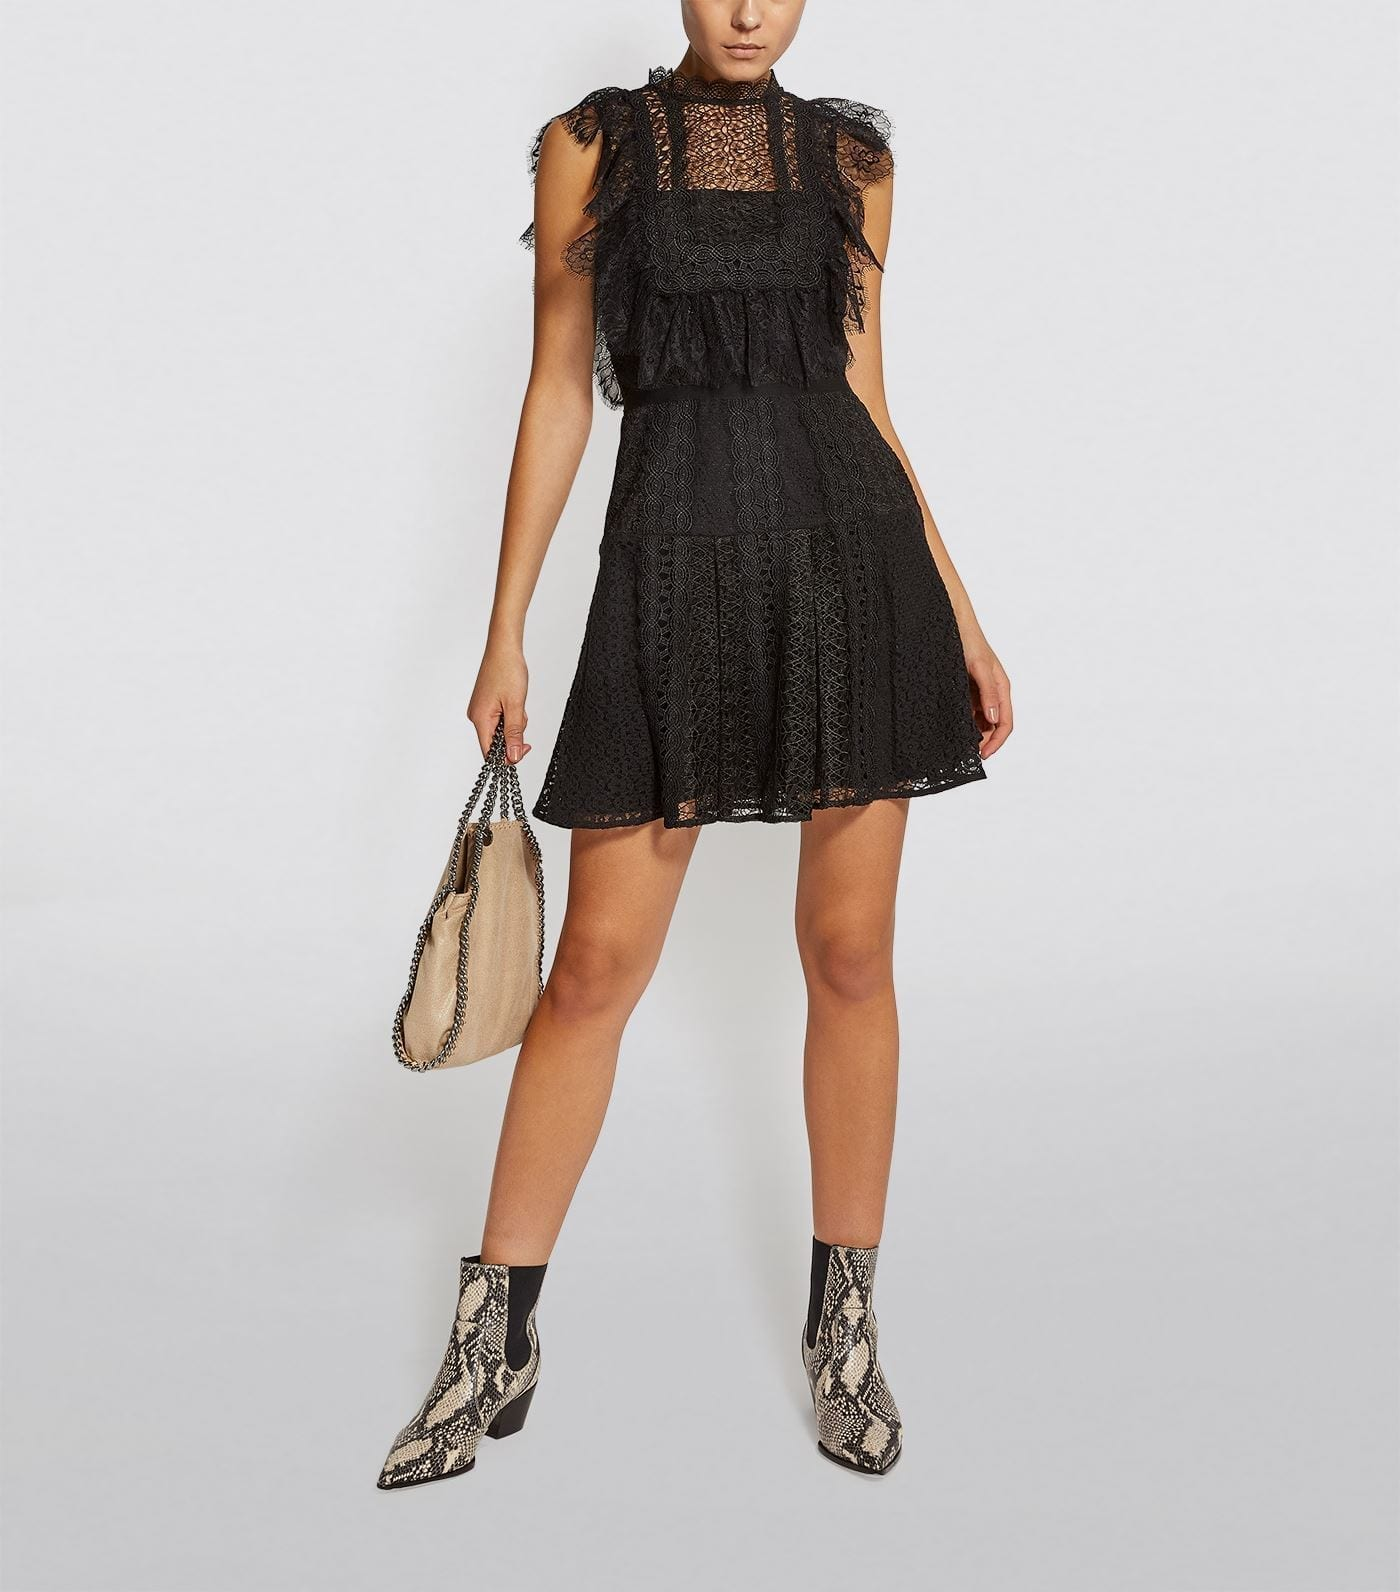 SELF PORTRAIT Lace Sleeveless Mini Dress